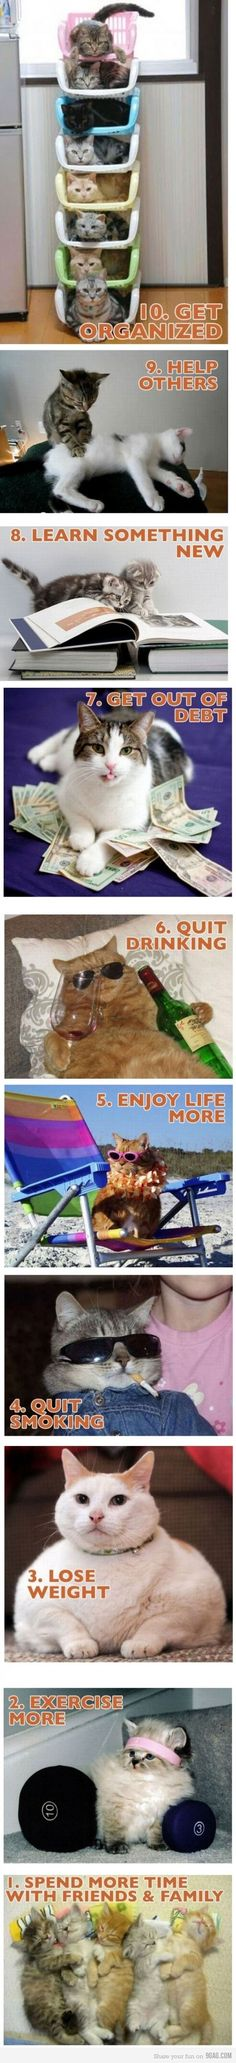 new years resolutions, cats style